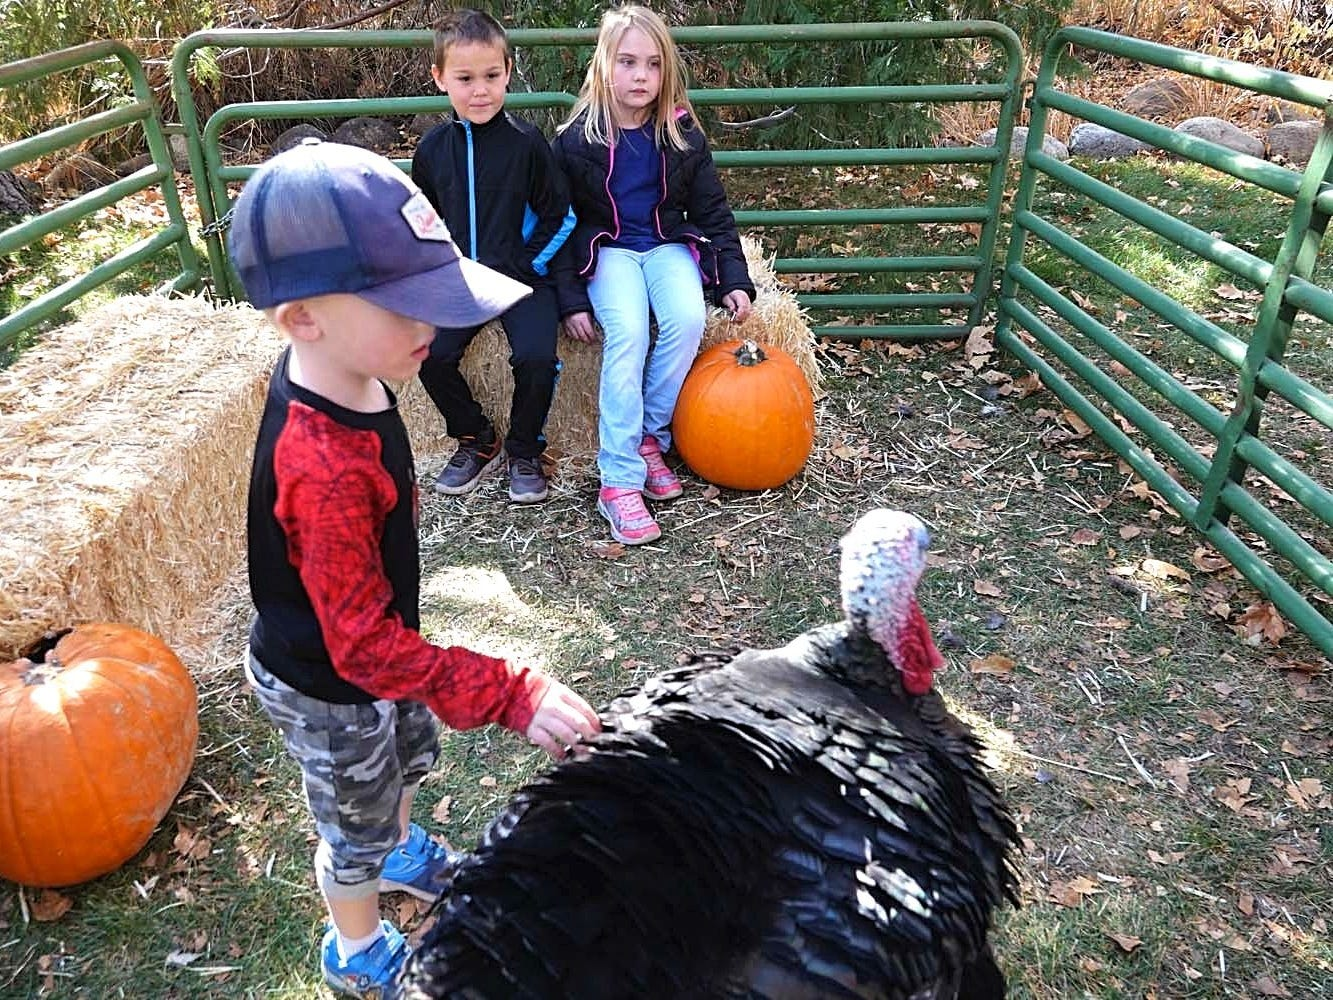 Images taken from the 12th annual Meet the Turkeys event held on Nov. 10, 2018 at Rancho San Rafael in Reno.